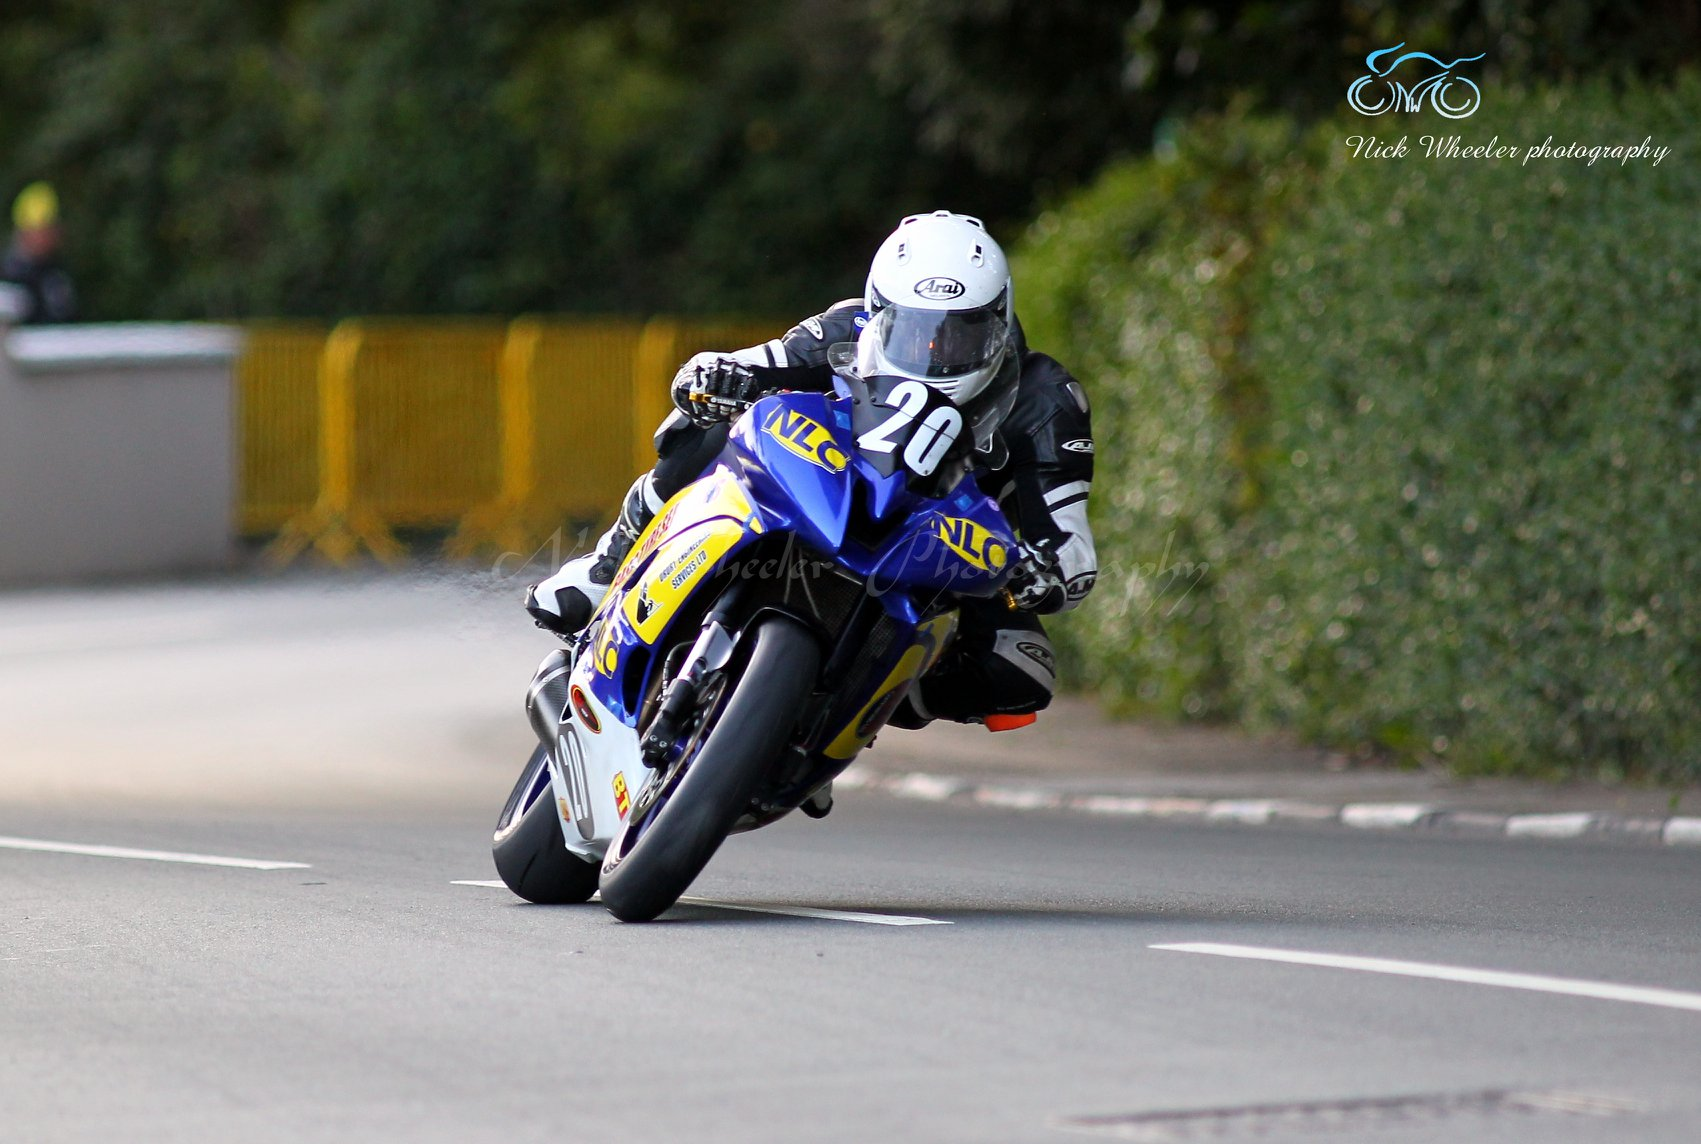 Classic TT/Manx Grand Prix: Monday Practice Results Wrap Up